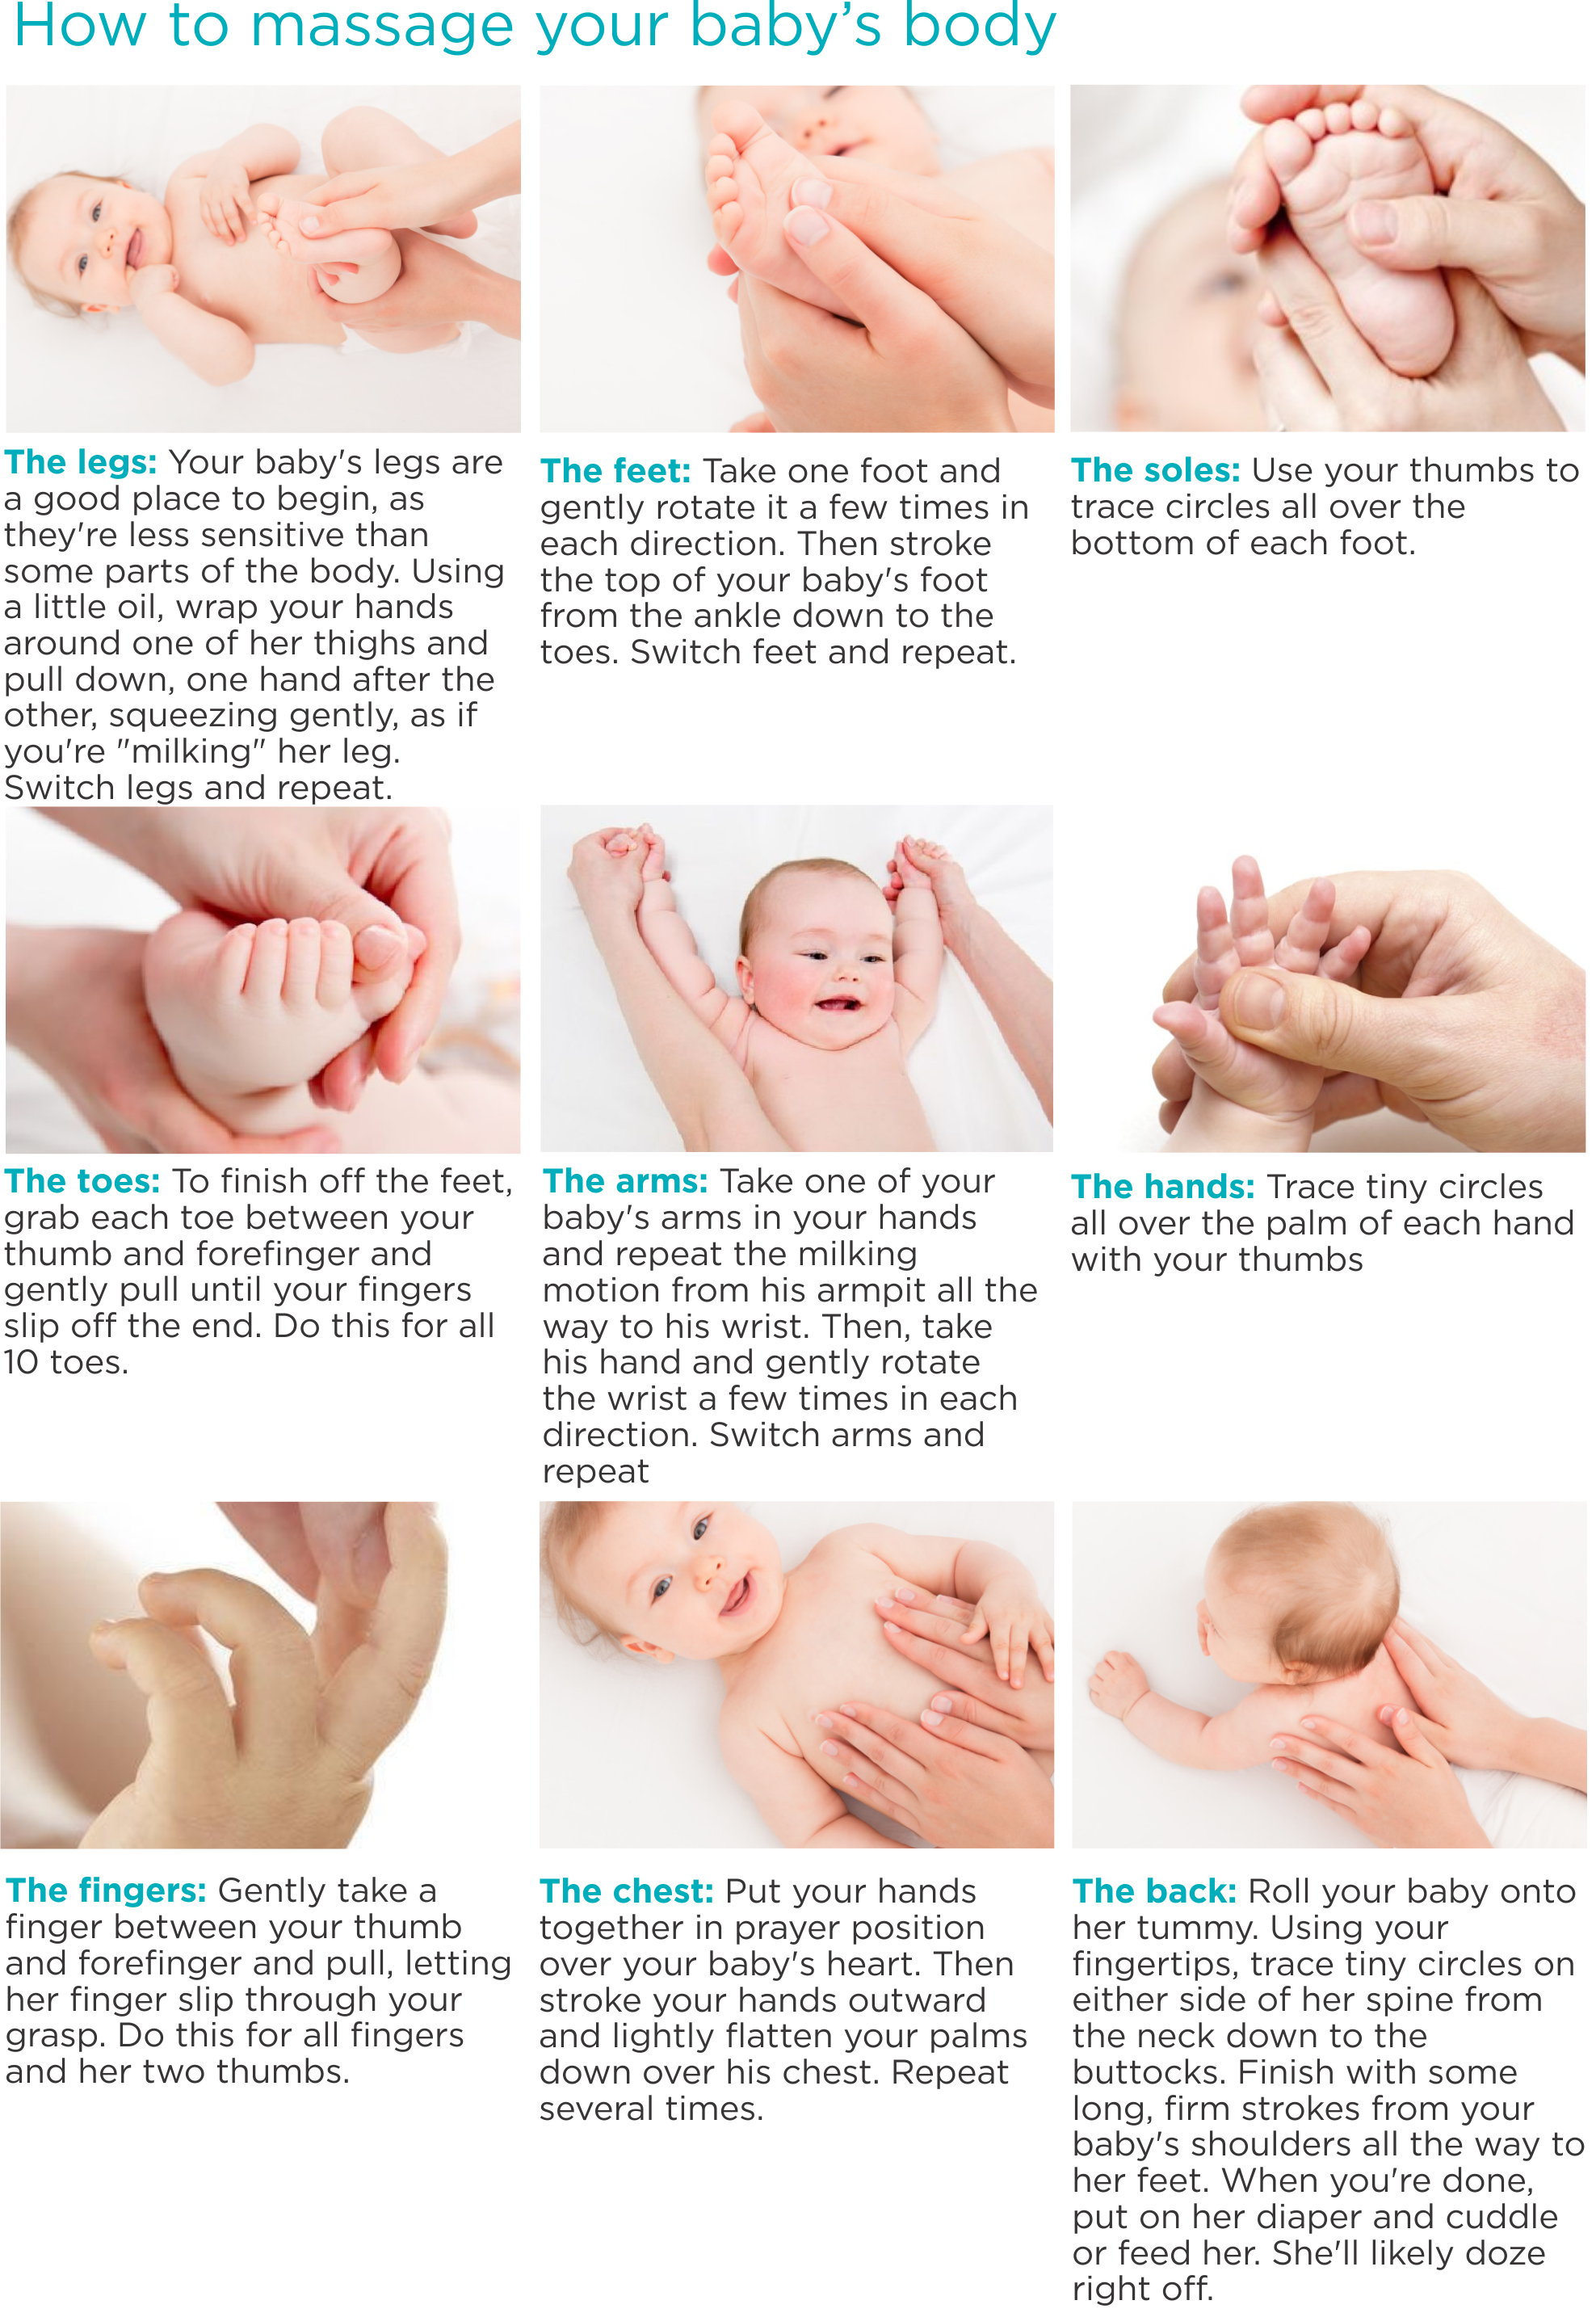 How to massage the baby 78